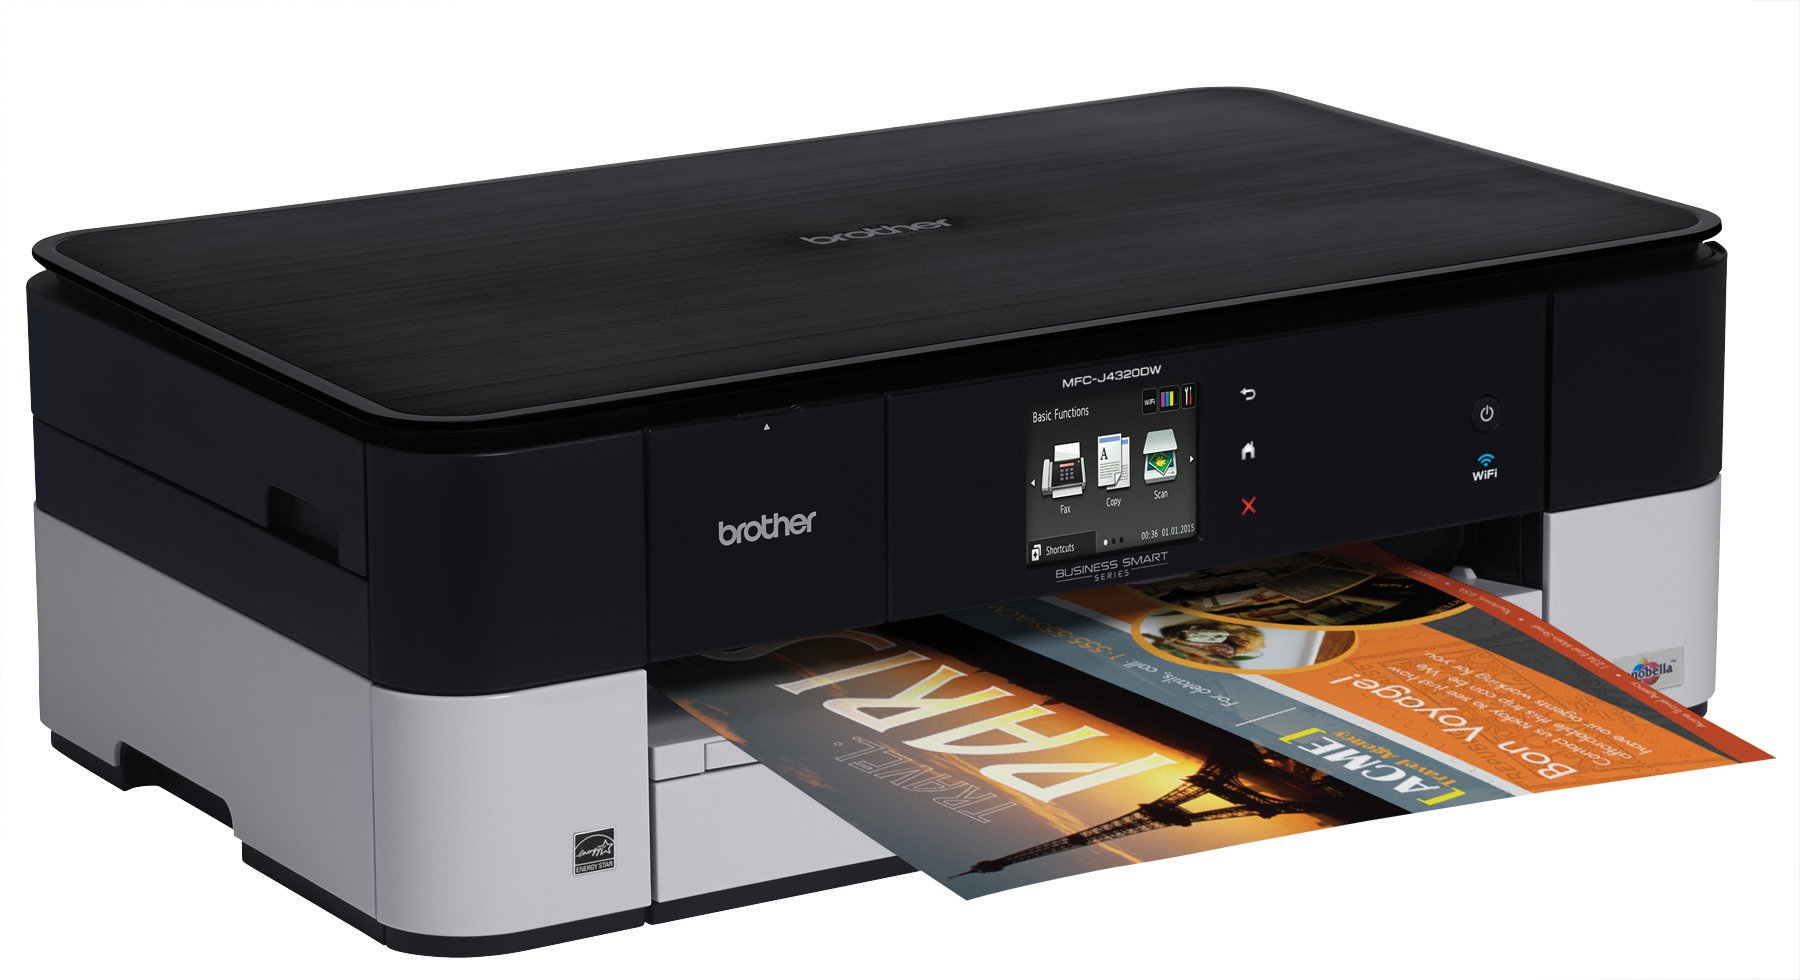 Brother Printer MFCJ4320DW Wireless Color Photo Printer with Scanner, Copier and Fax, Amazon Dash Replenishment Enabled by Brother (Image #5)